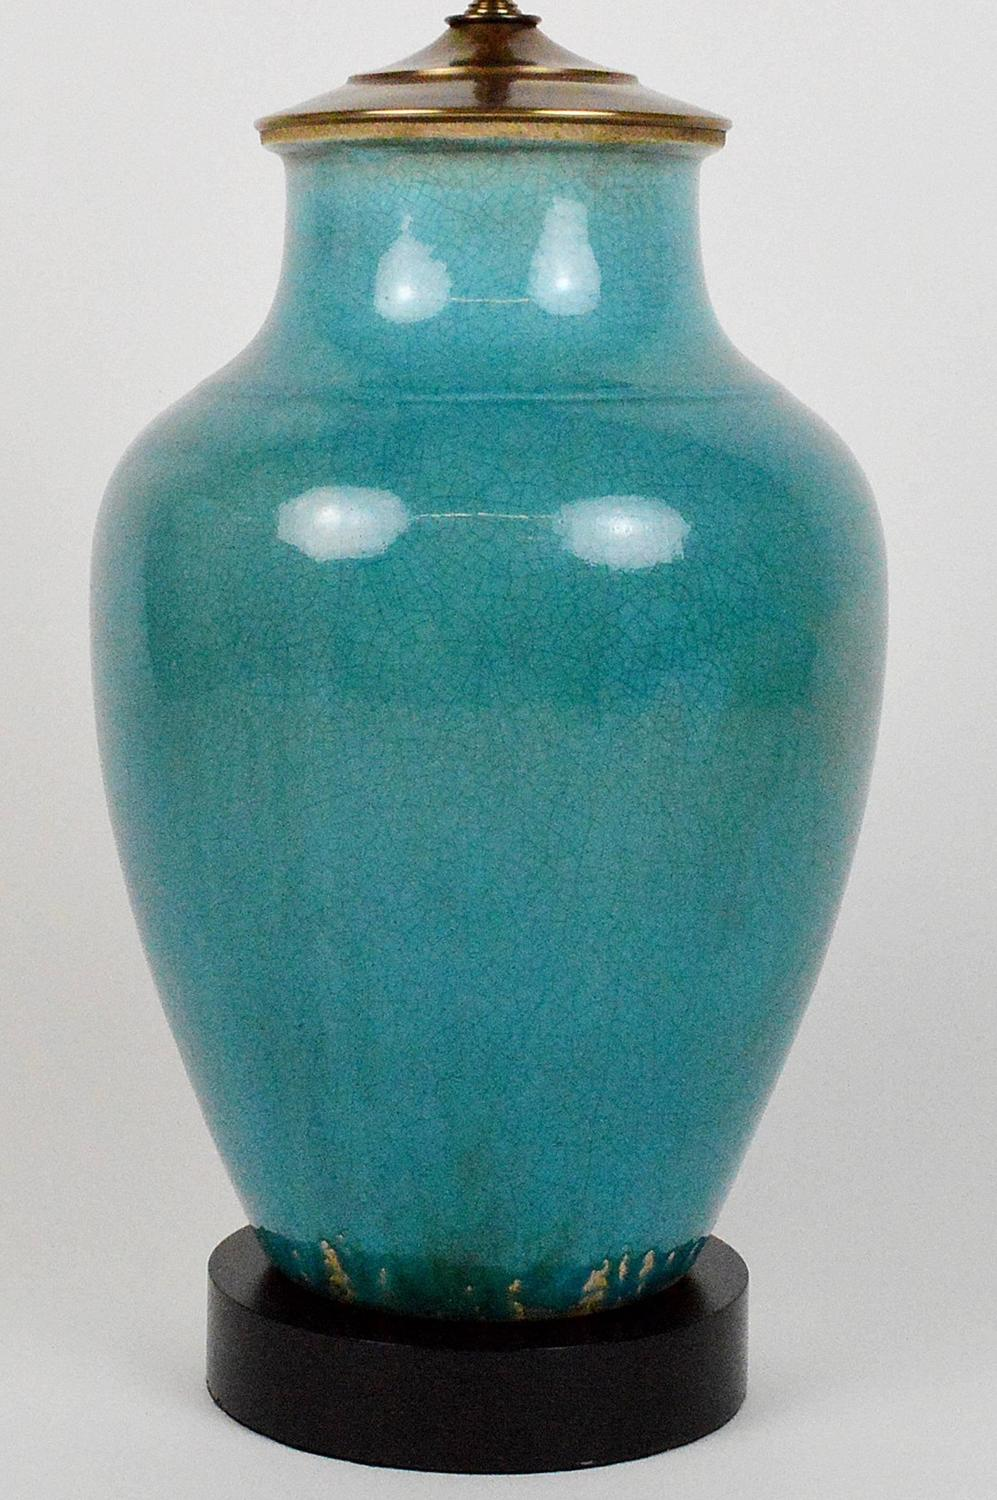 Turquoise Pottery Vase Mounted As A Lamp For Sale At 1stdibs